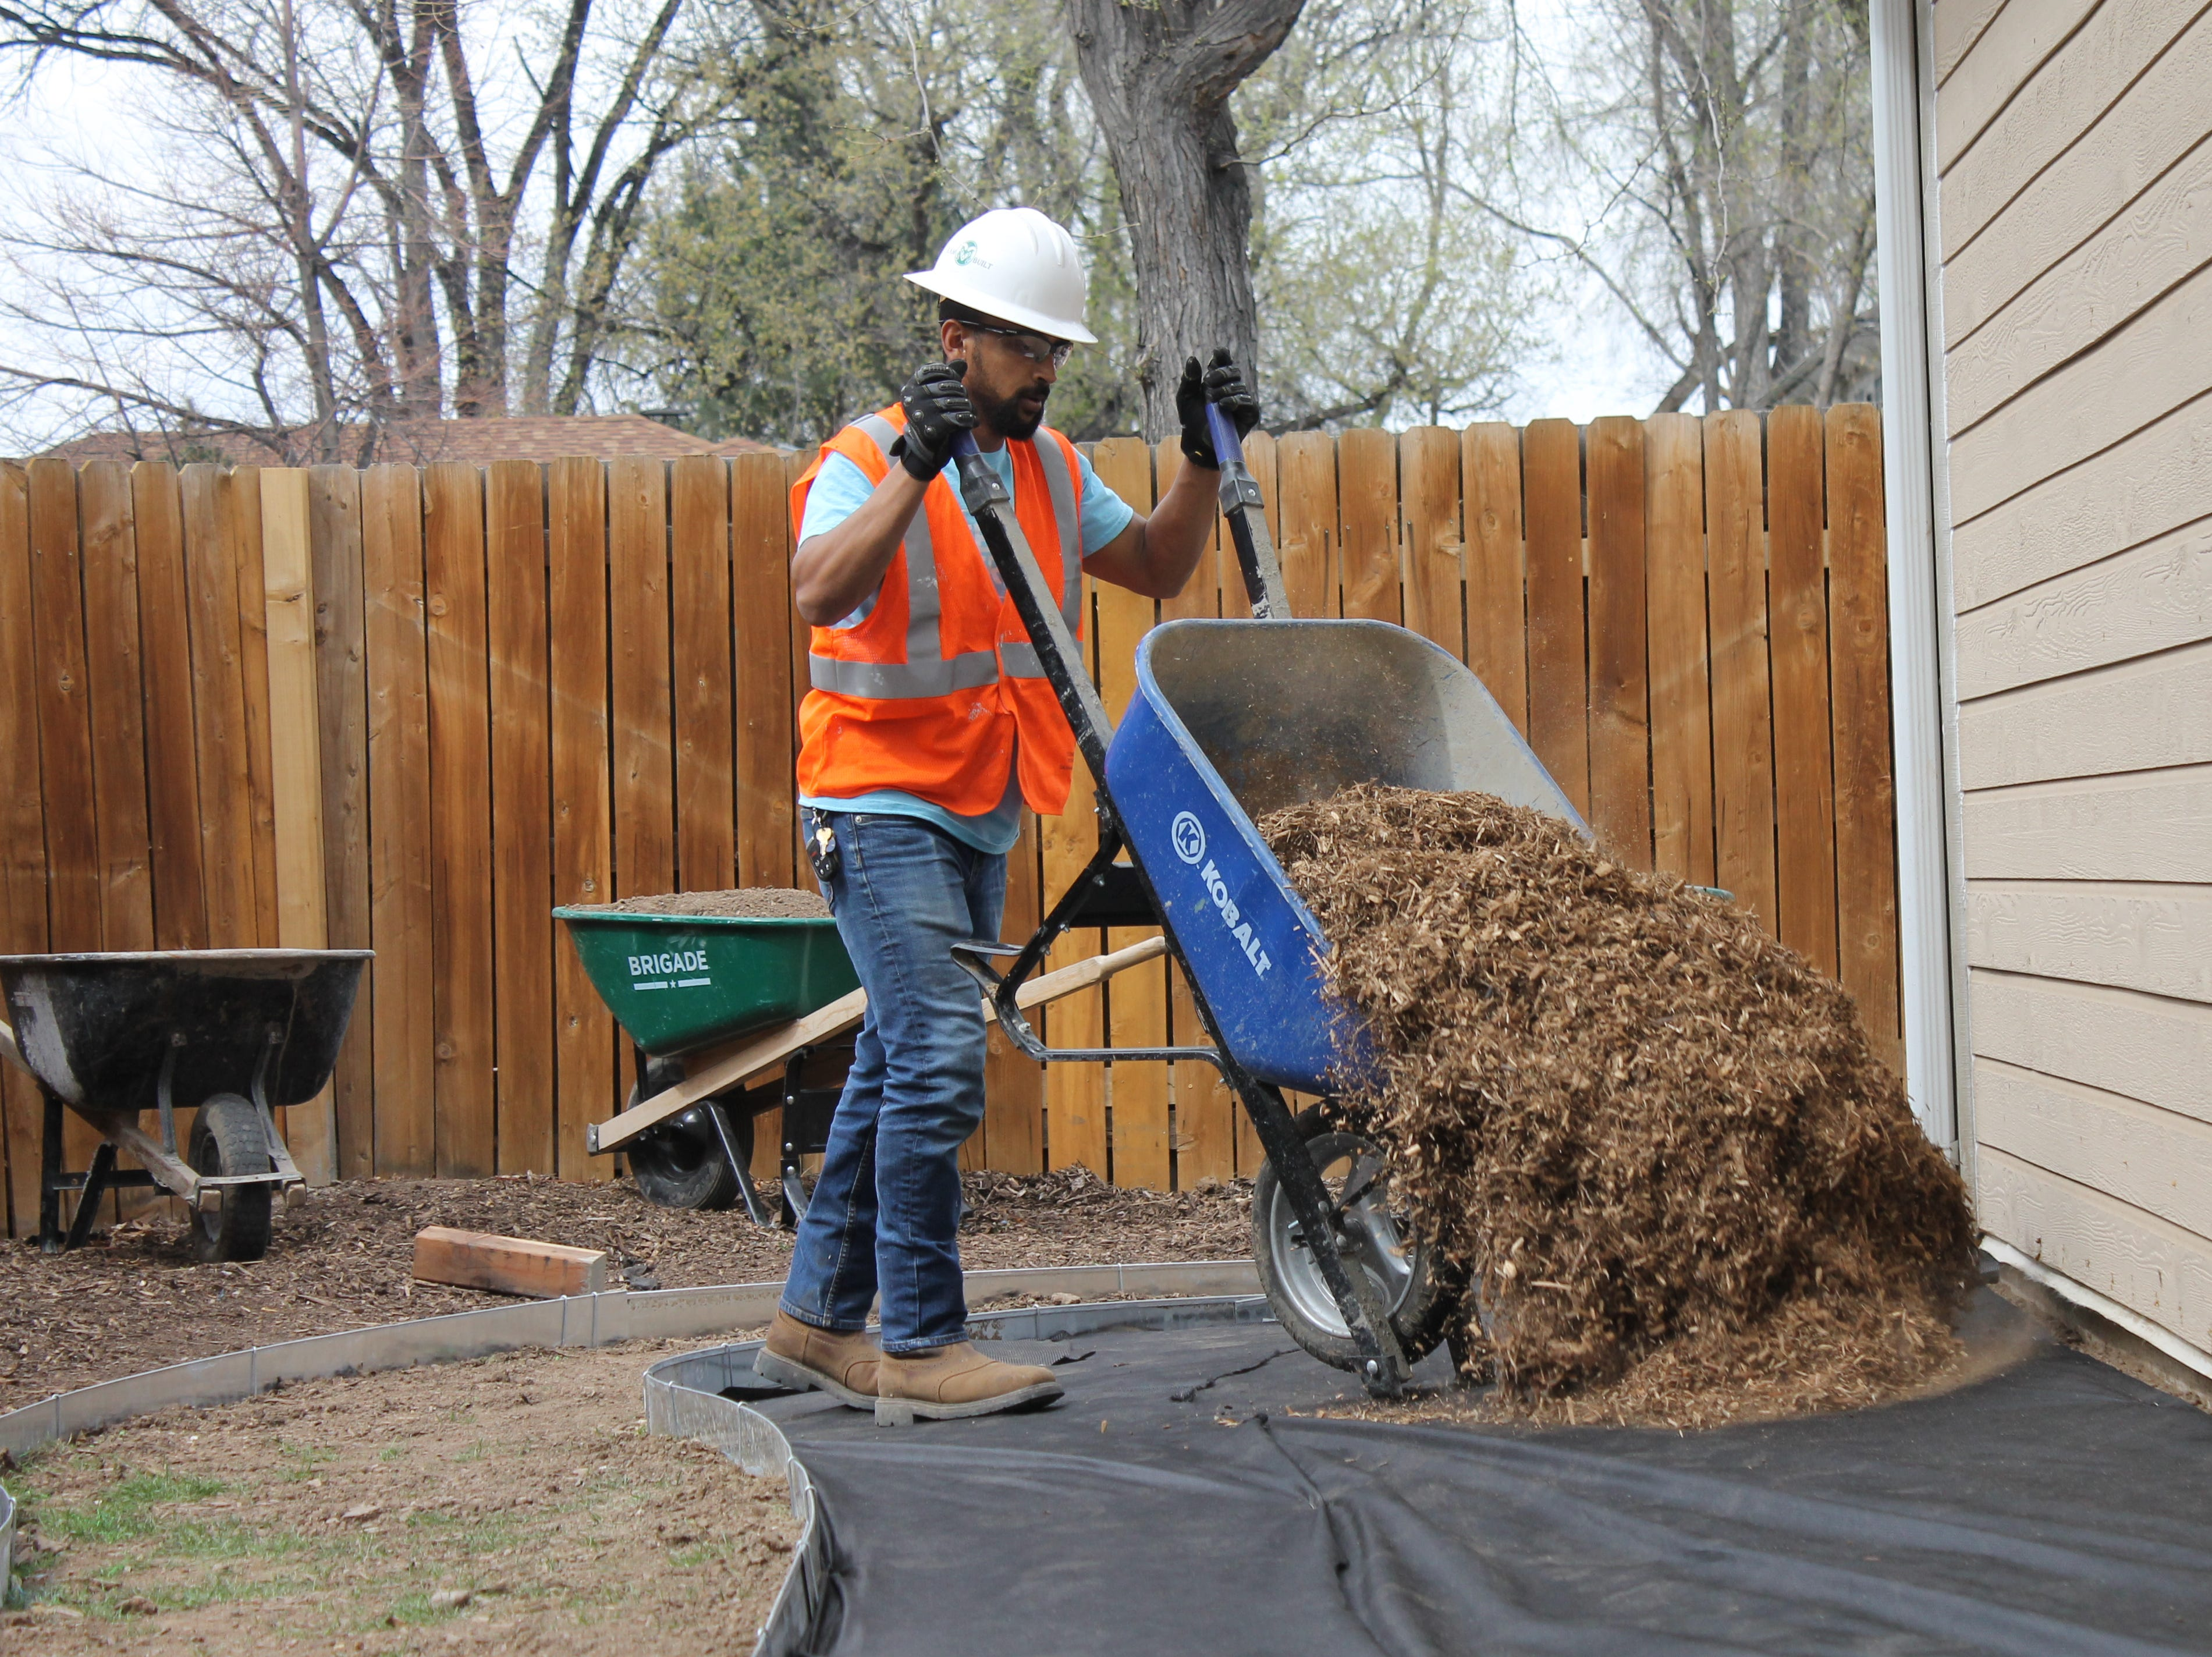 Colorado State University construction management student Saleh Bawareth dumps out a wheelbarrow full of mulch. Bawareth and a team of students from CSU's Construction Management Cares team work to make improvements for homeowners with disabilities.